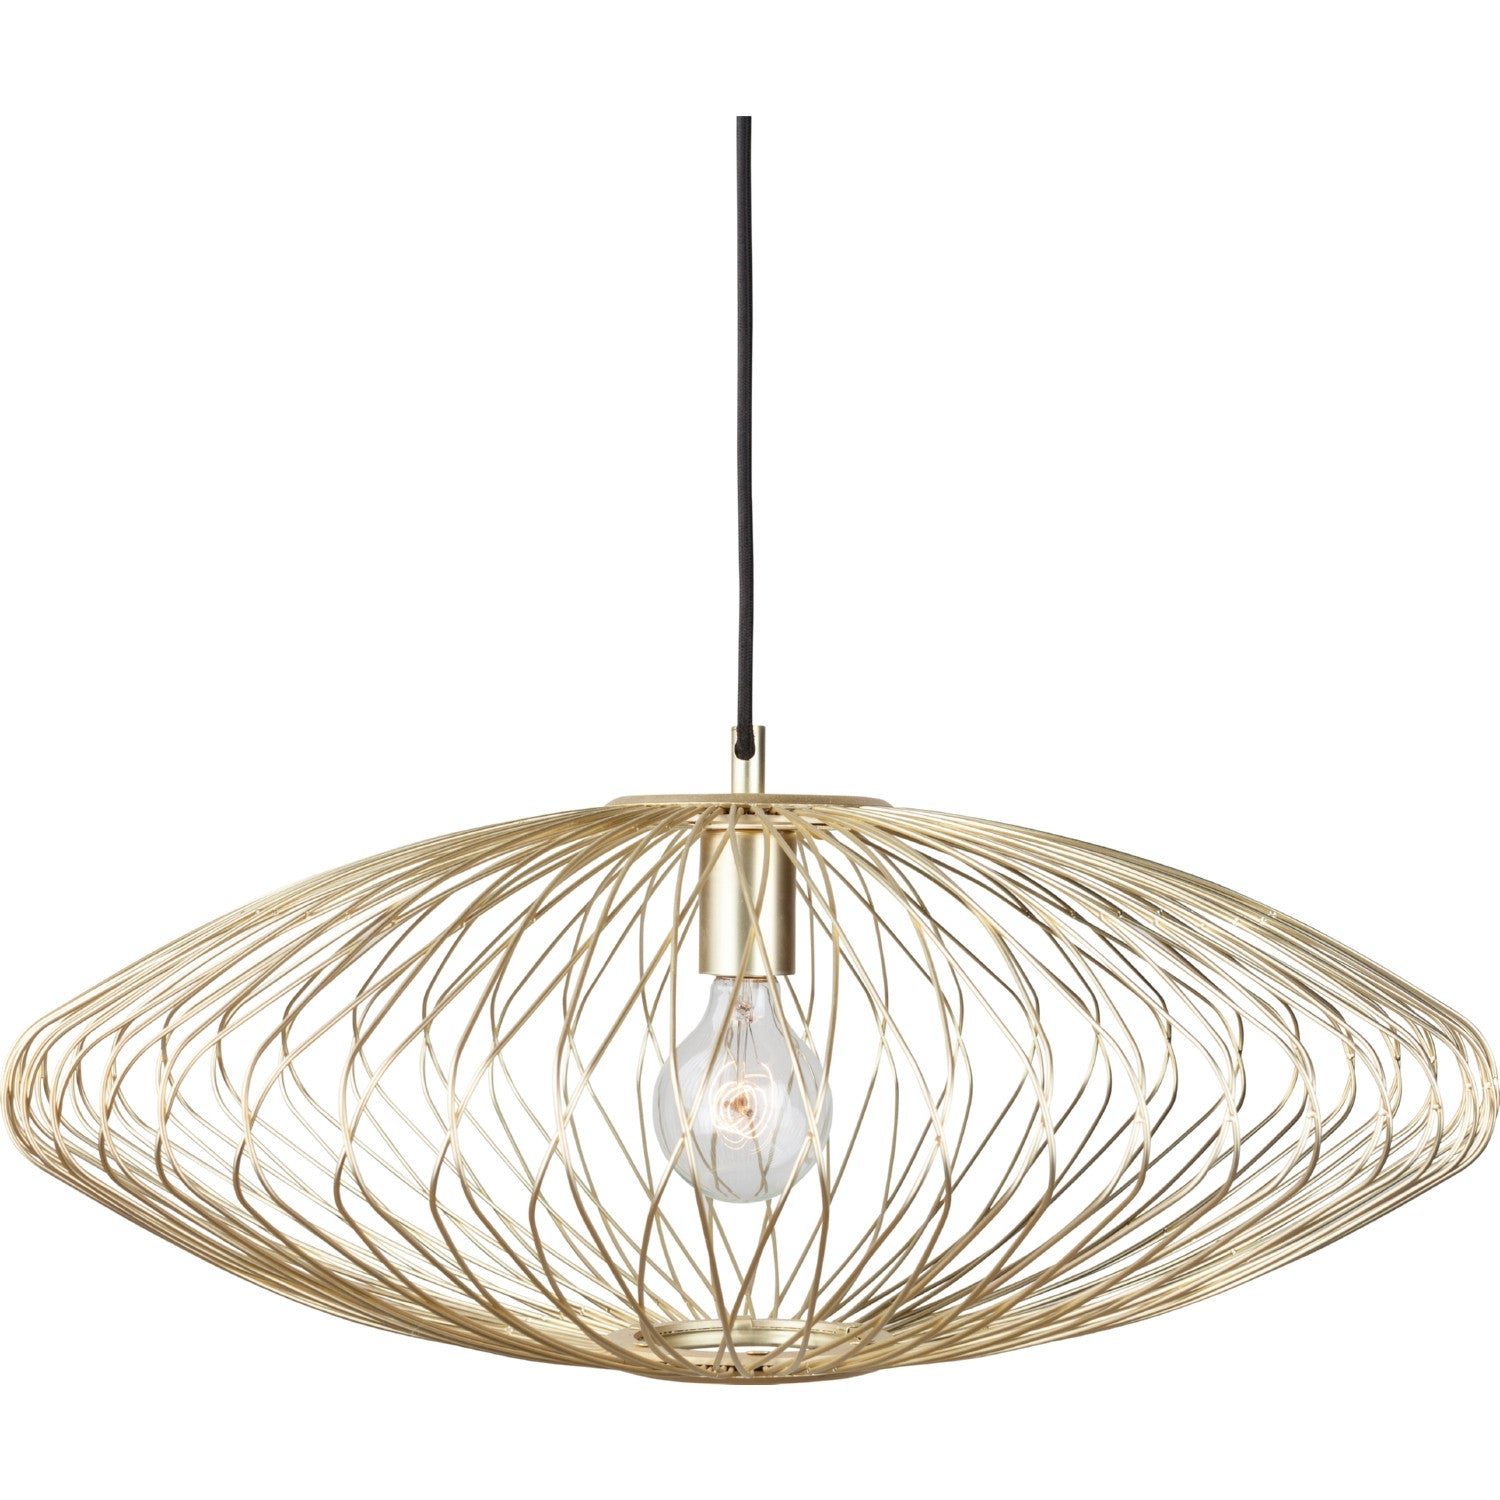 Astra Gold Metal Pendant Lighting - Old Bones Furniture Company